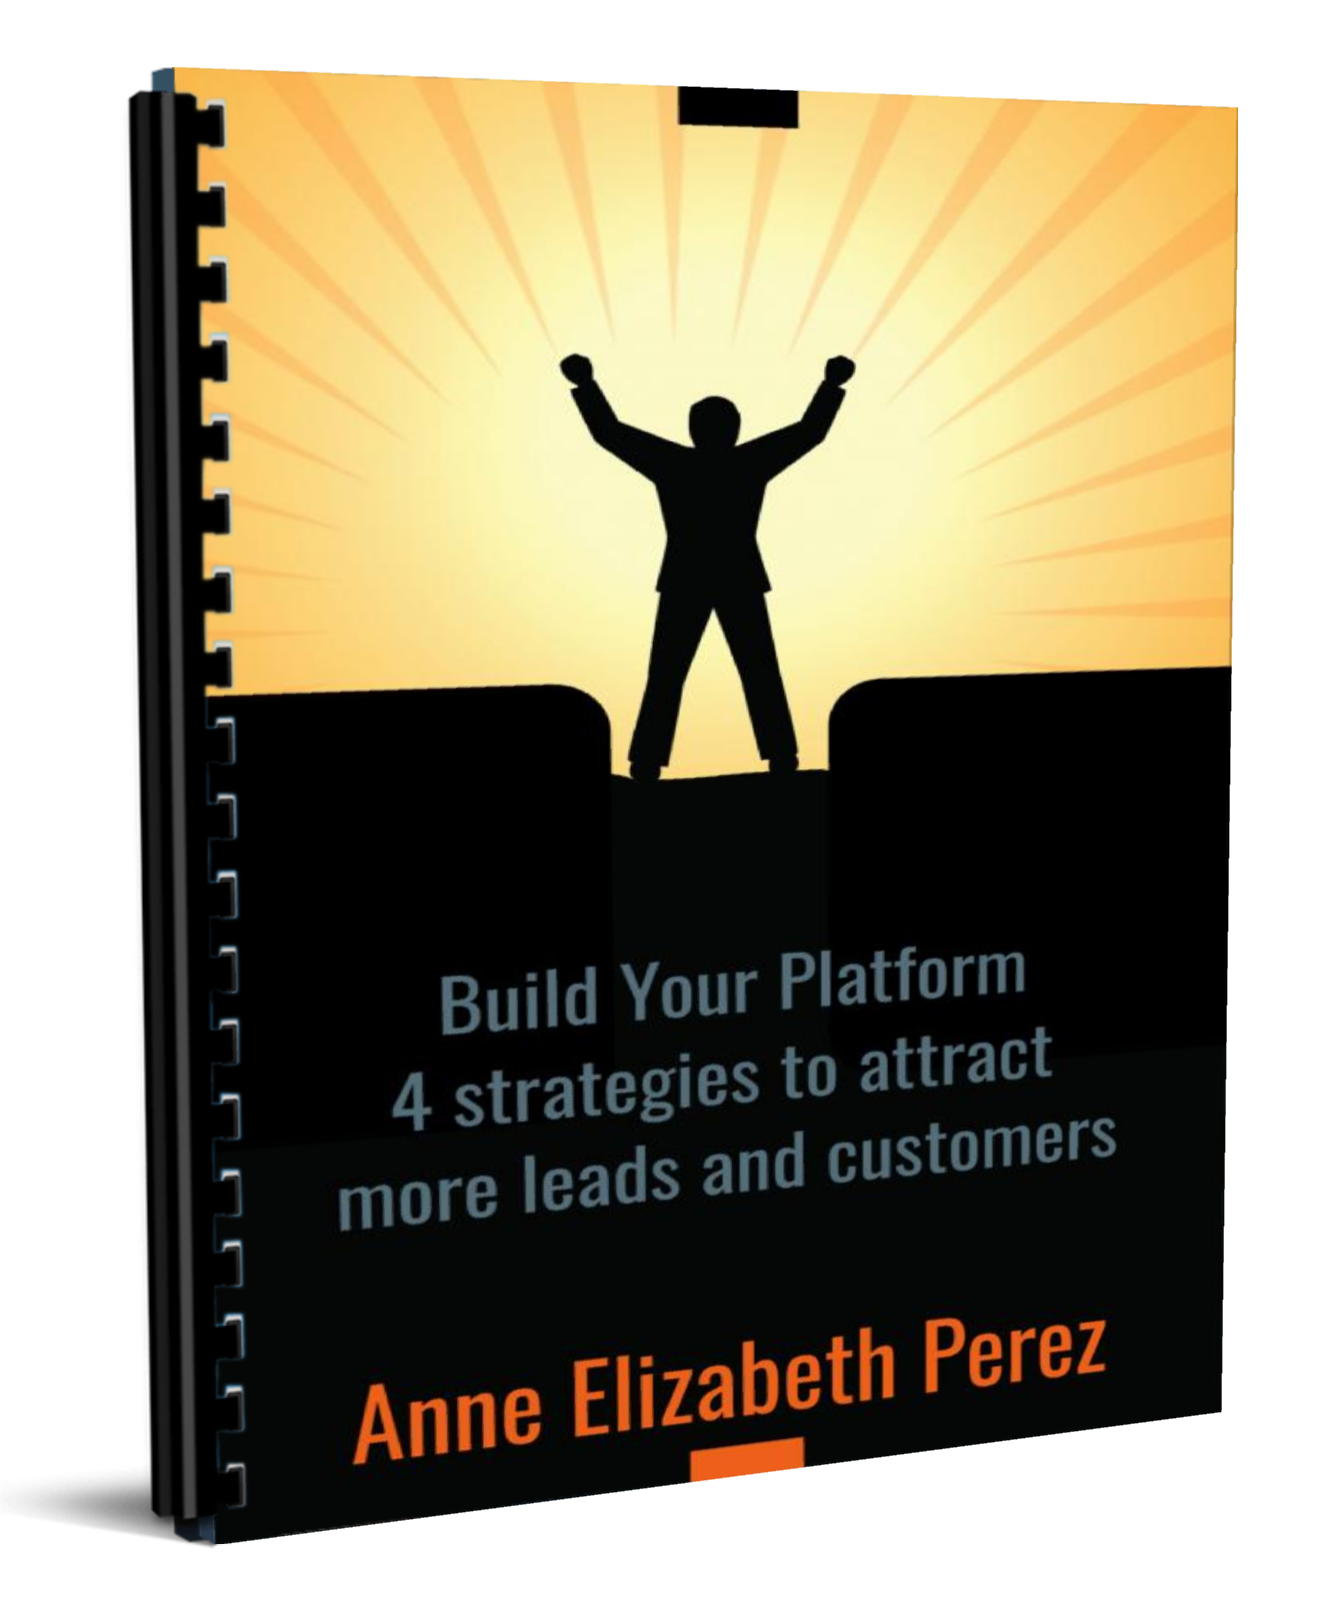 build your platform with anne elizabeth perez